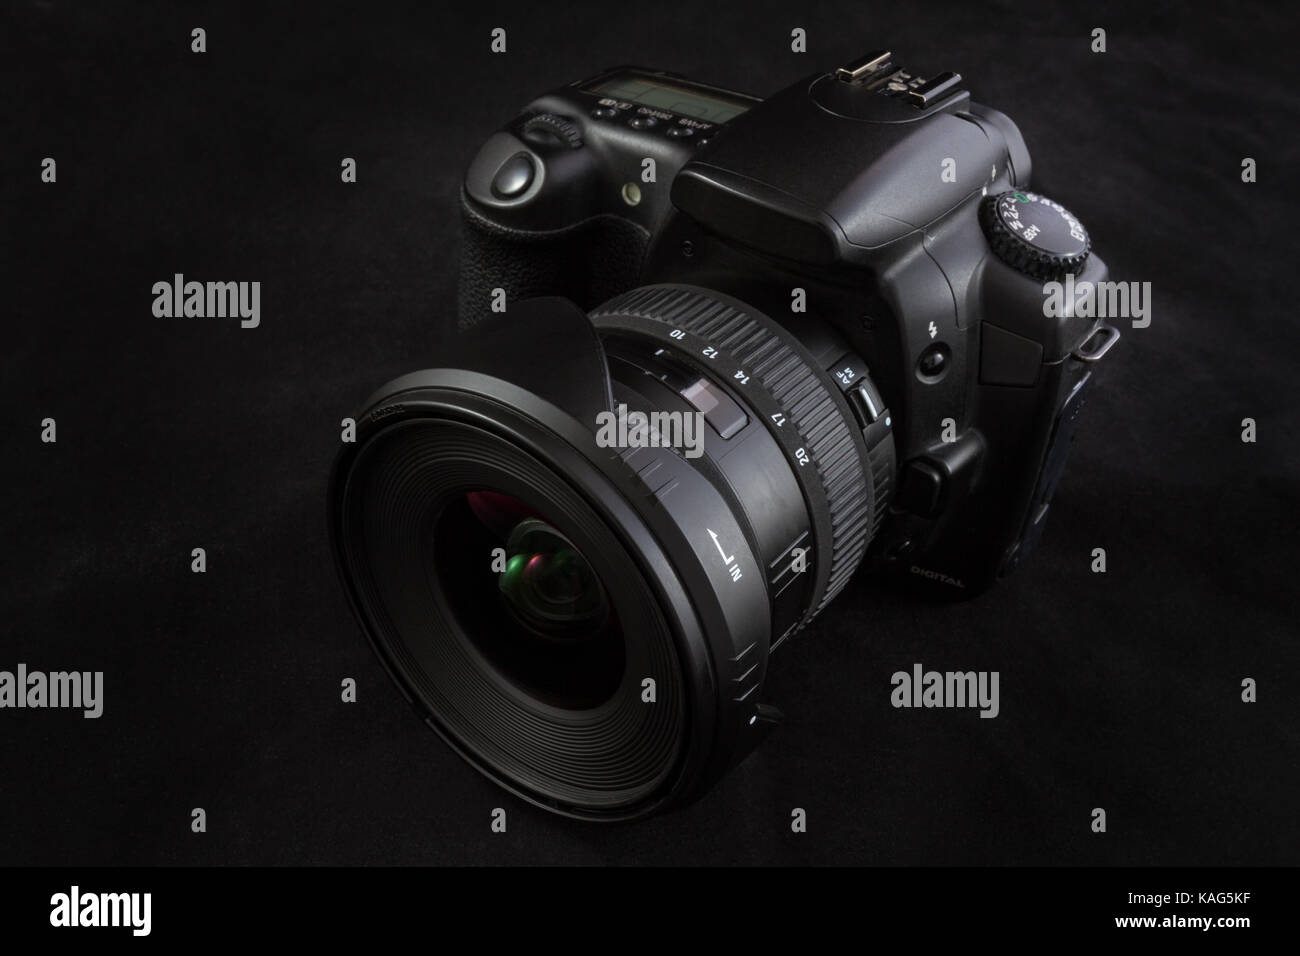 One black camera with wide angle lens isolated on black background, shot from slight;y elevated  viewpoint - Stock Image